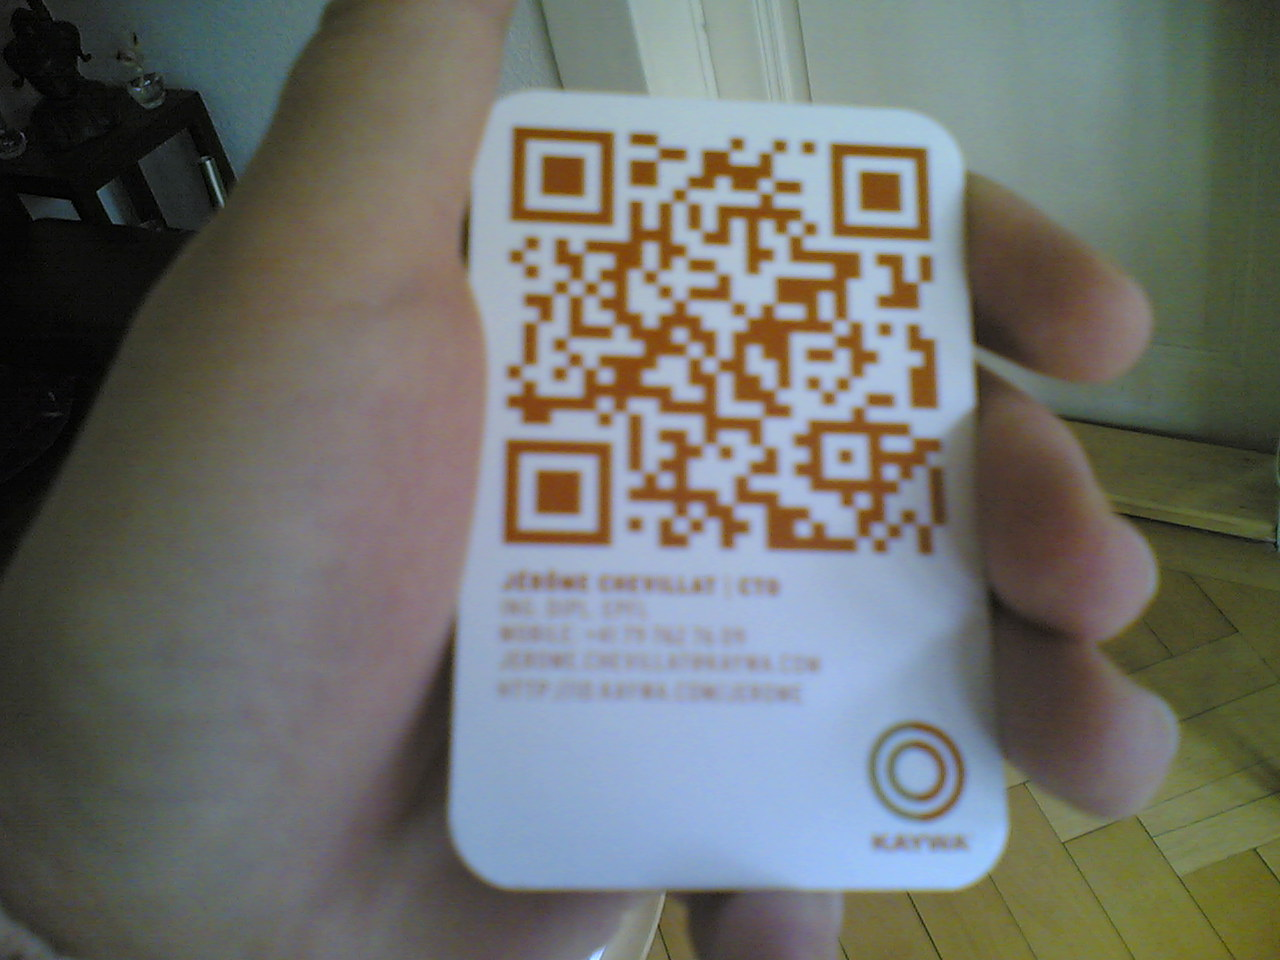 New Business Card With QR Codes